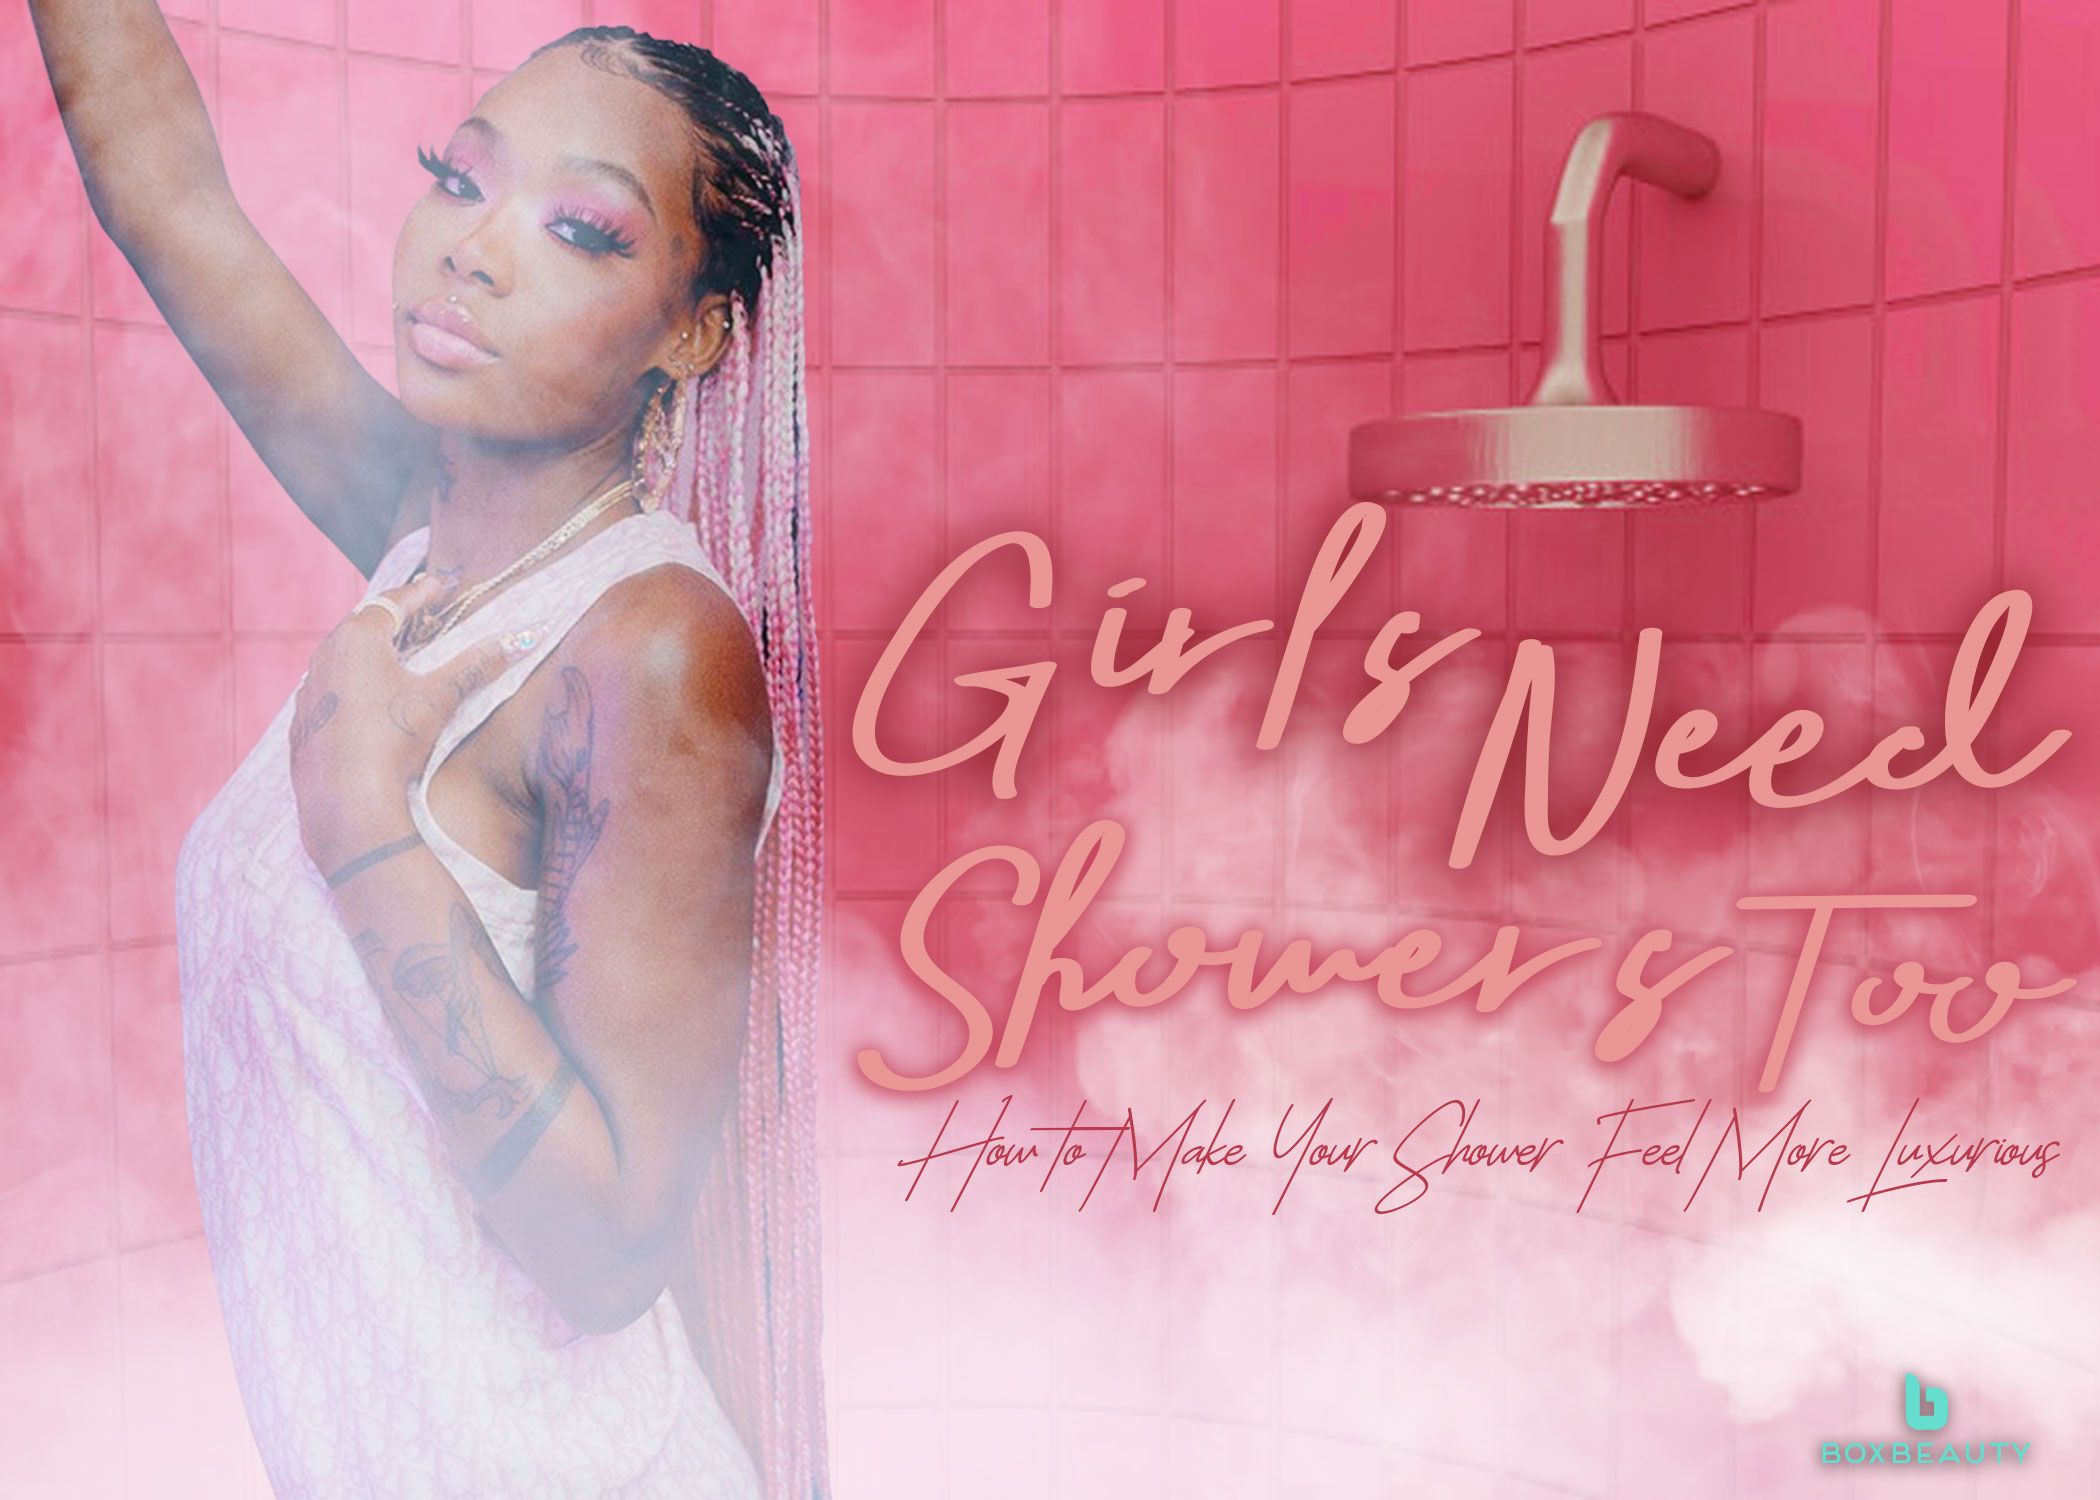 Girls Need Showers Too: How to Make Your Shower Feel More Luxurious